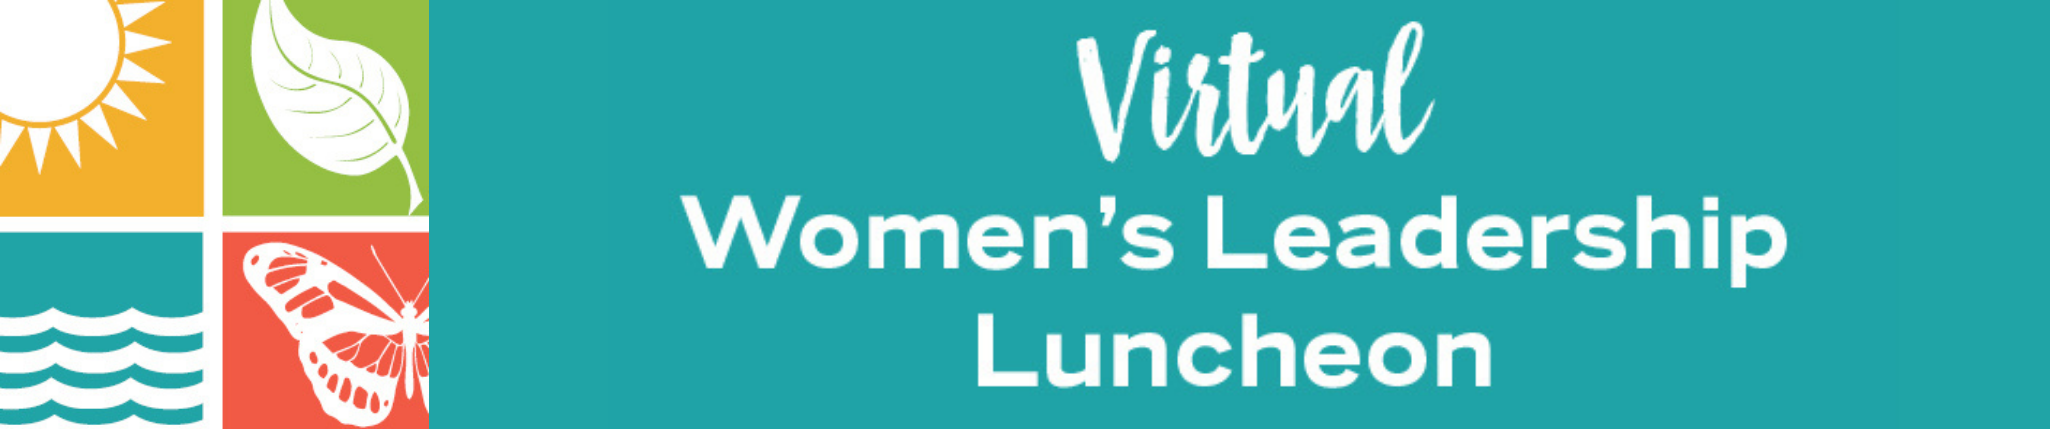 SSND Virtual Women's Leadership Luncheon--St. Louis, MO